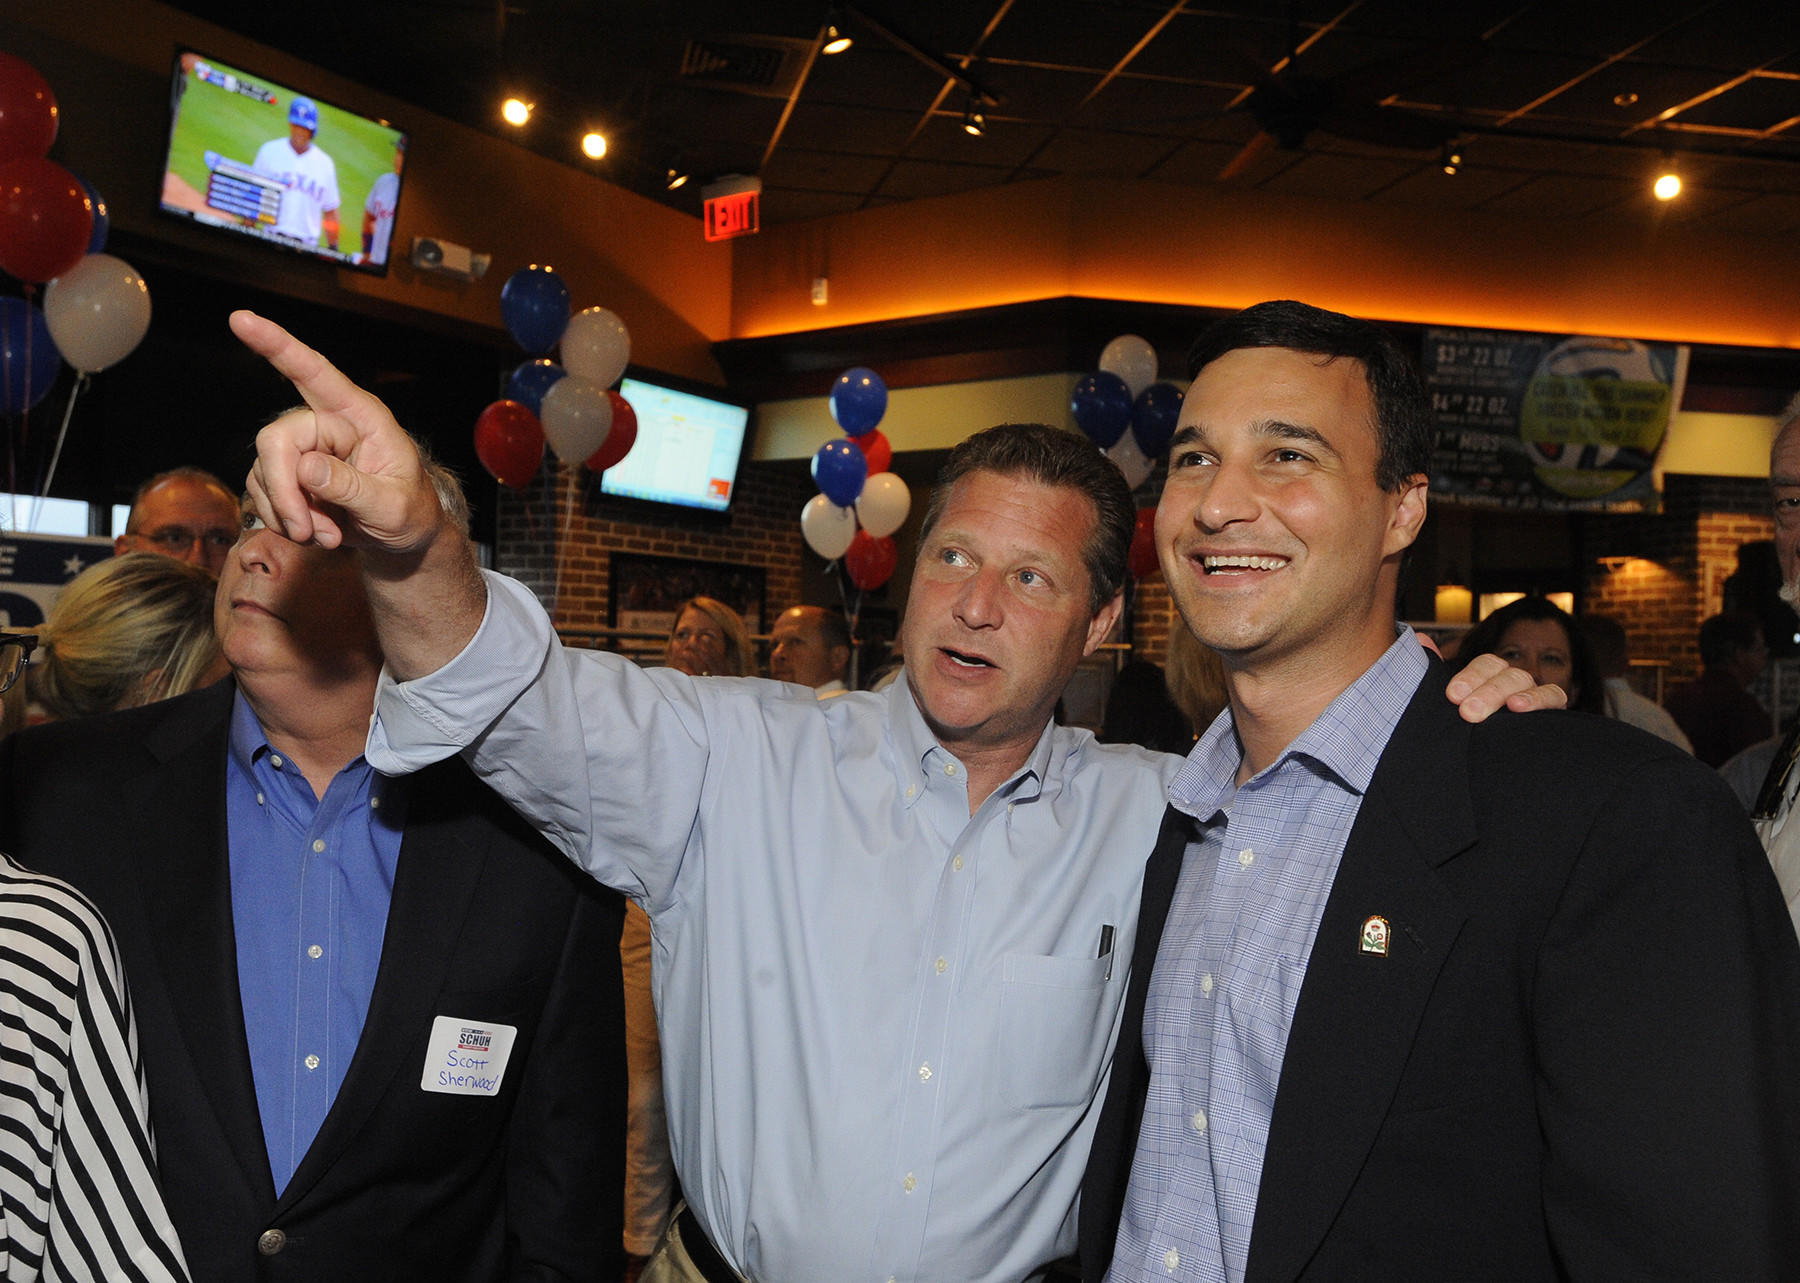 County Executive candidate Steve Schuh looks at the incoming election results with Annapolis City Mayor Mike Pantelides while at the Greene Turtle in Pasadena on Tuesday evening for County Executive candidate Steve Schuh's campaign.